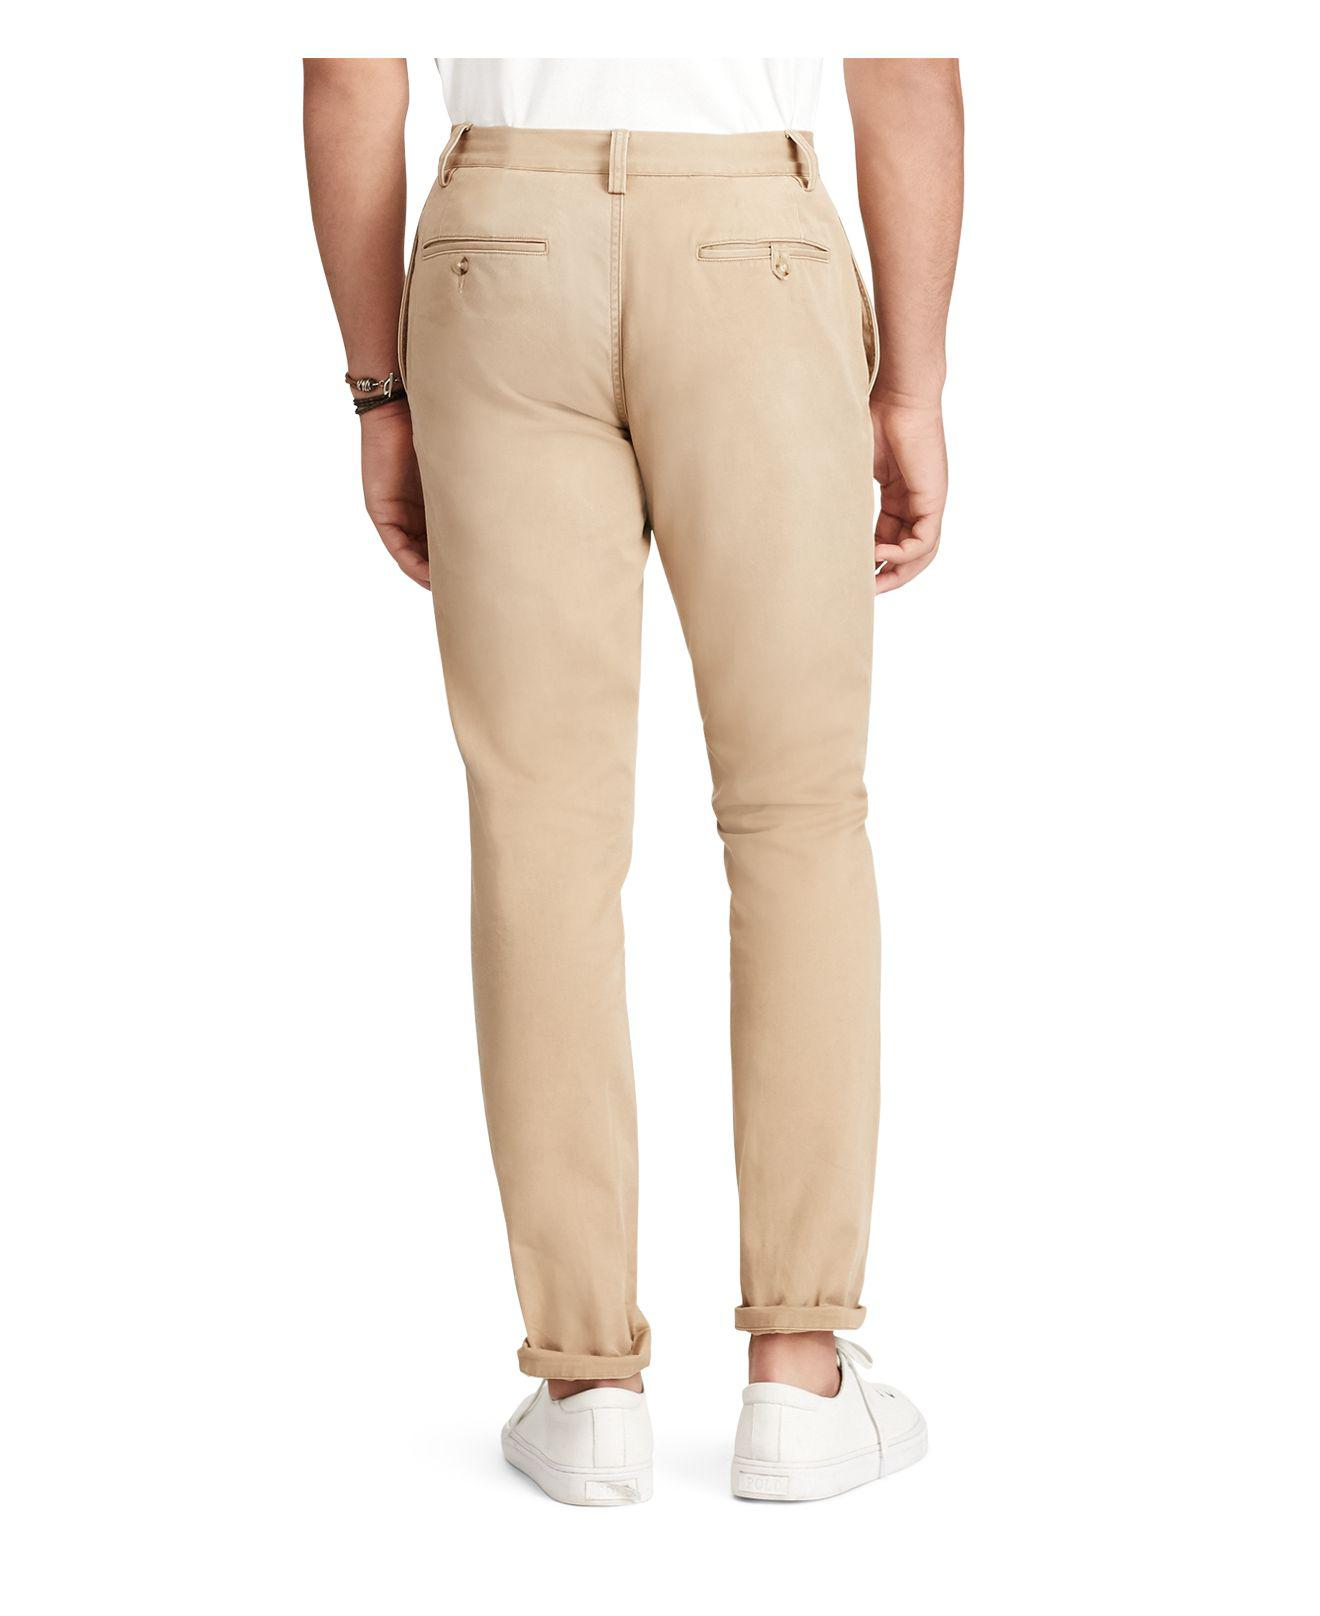 f966814d9c Polo Ralph Lauren Natural Straight Fit Selvedge Chino Pants for men